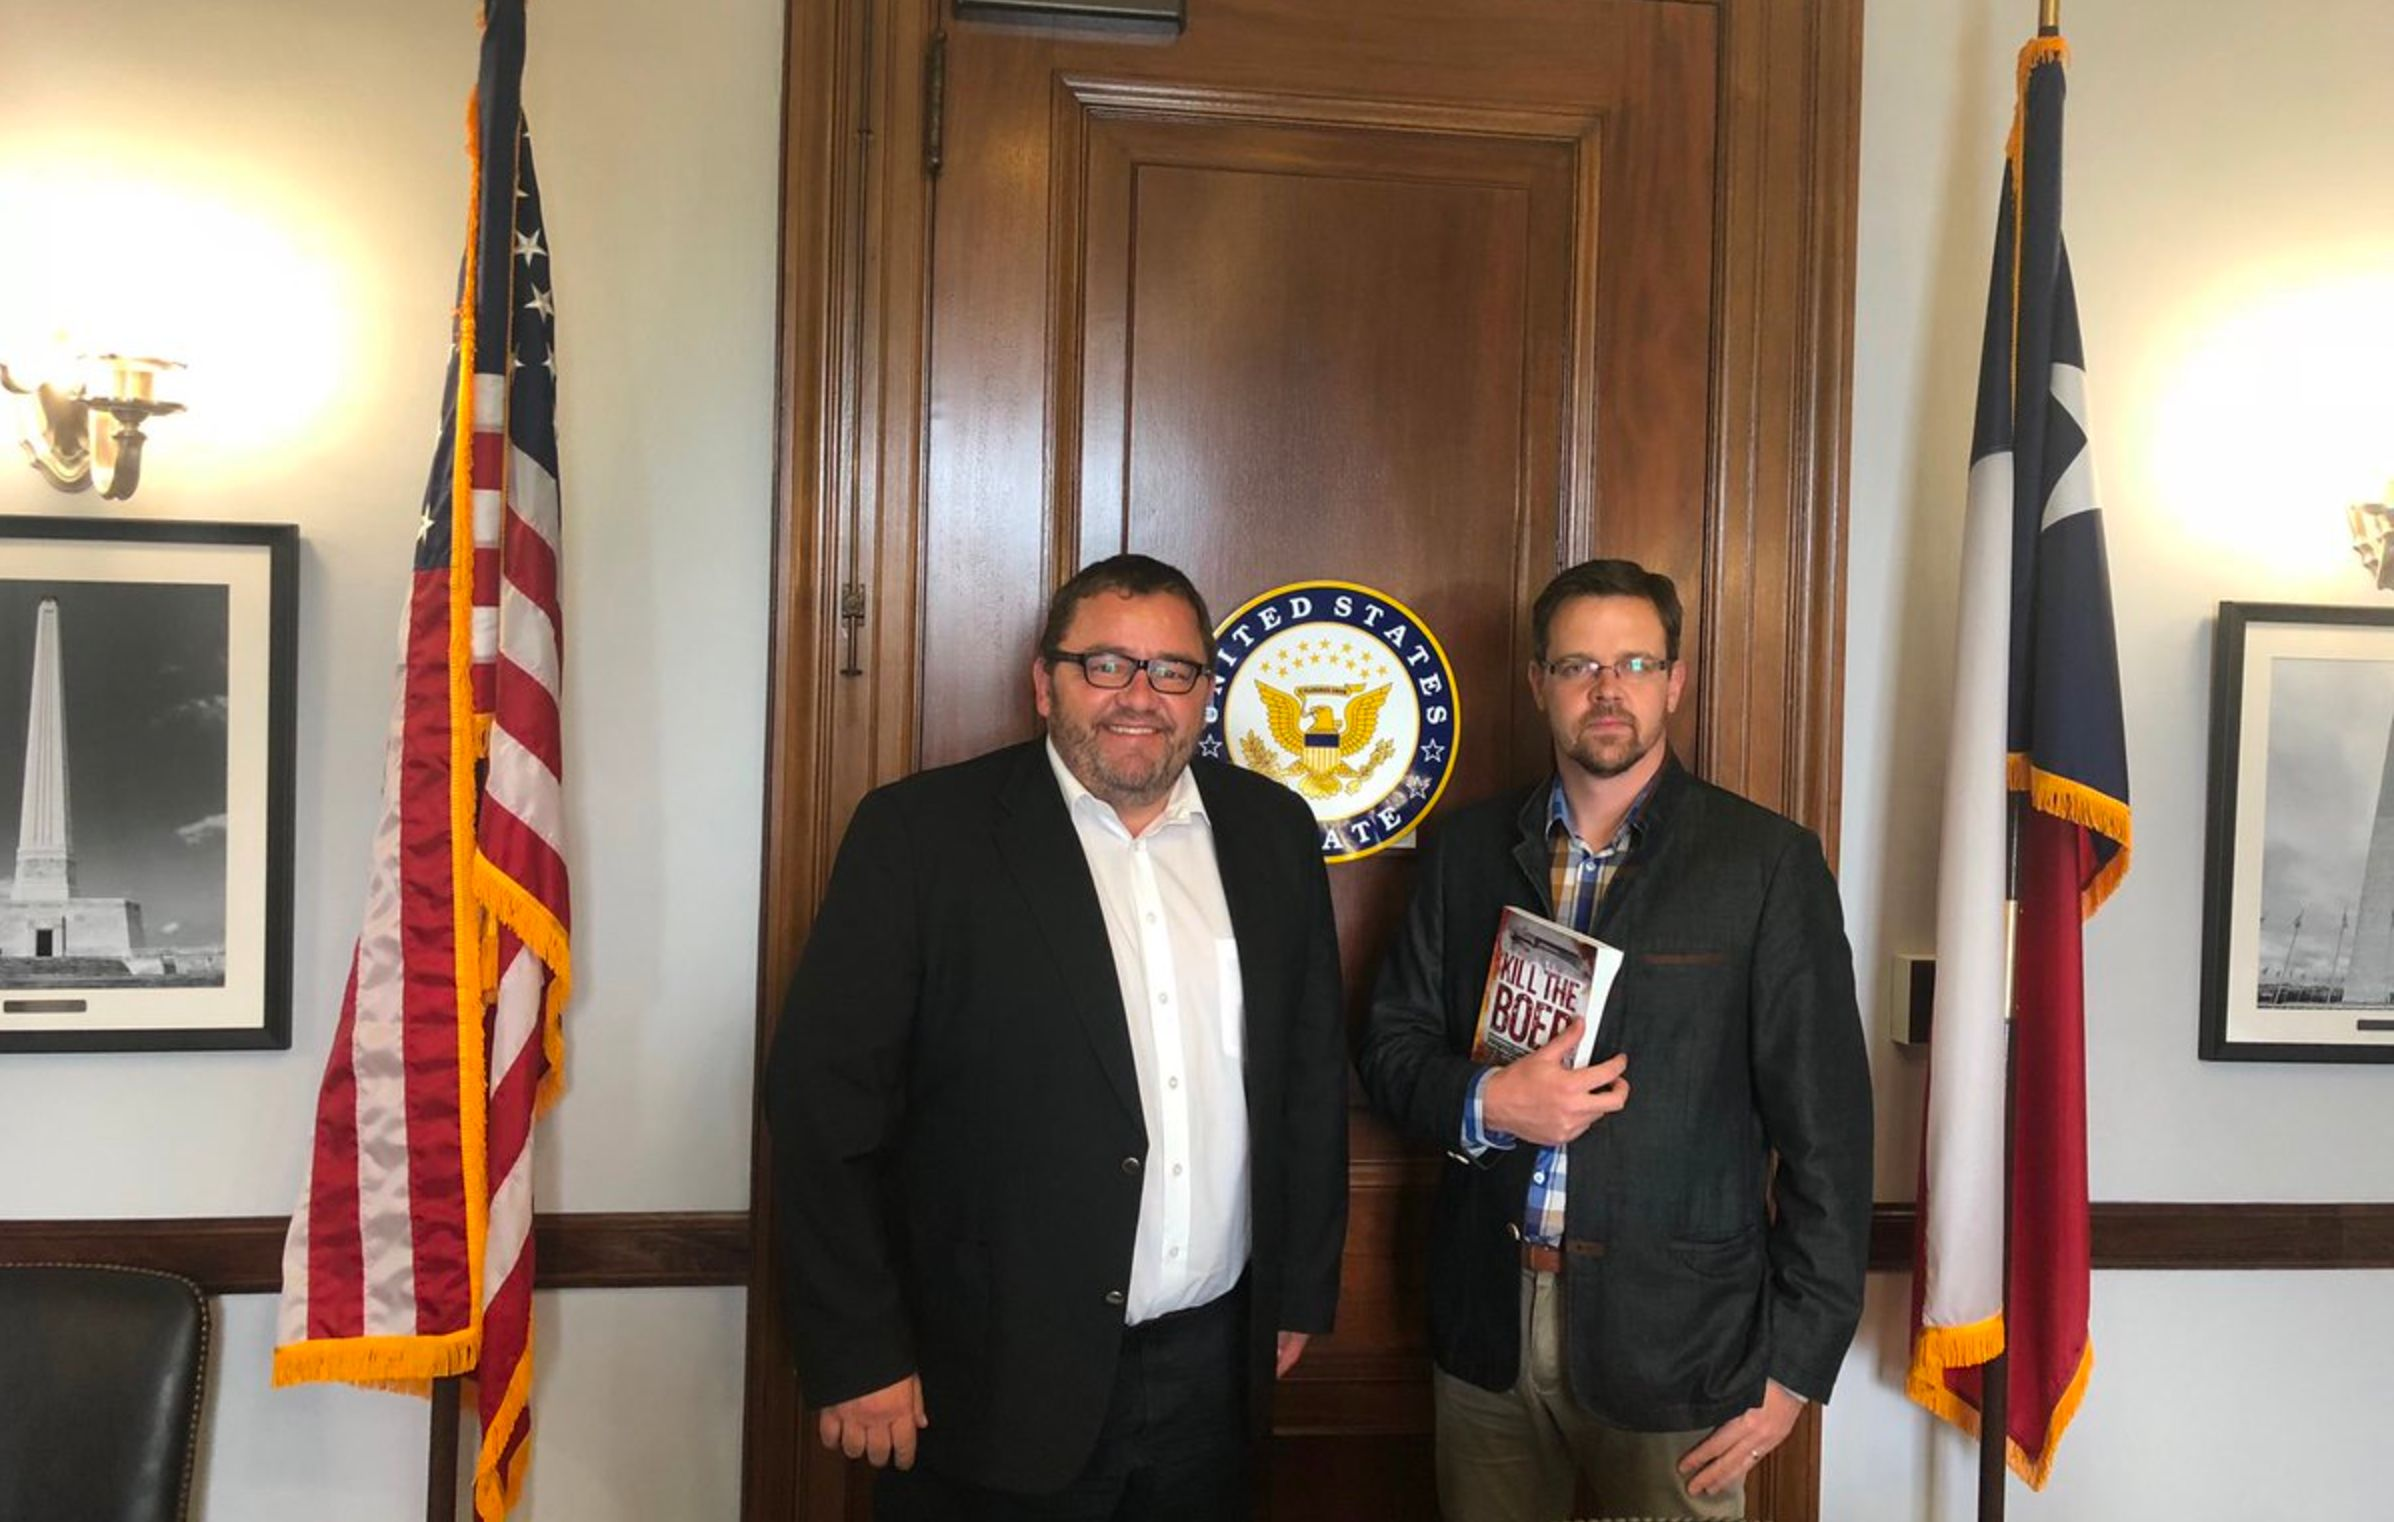 AfriForum heads Kallie Kriel and Ernst Roets pose for picture on Capitol Hill